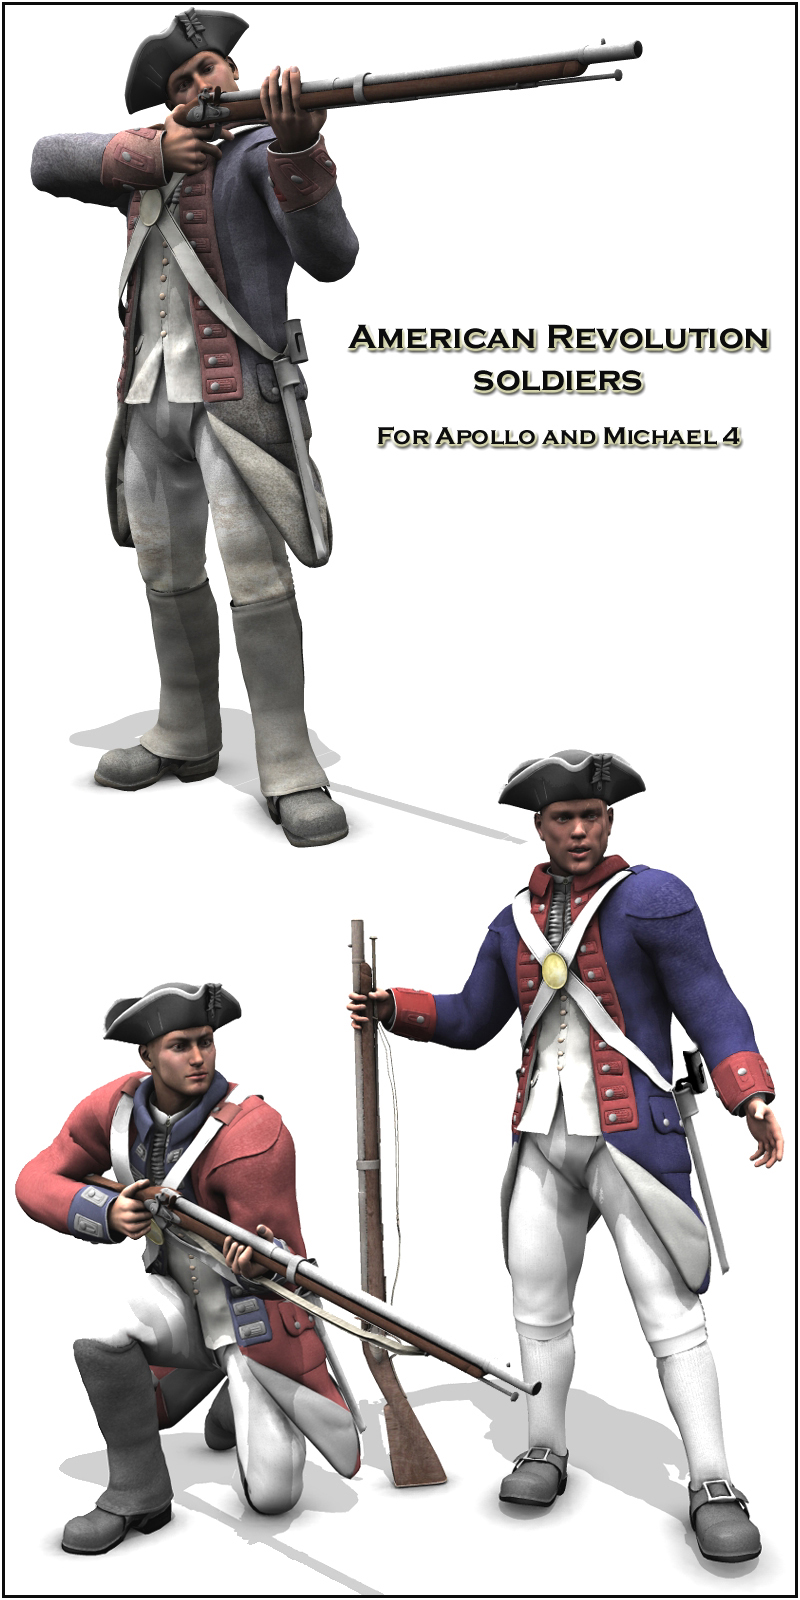 American Revolution soldiers - Extended License